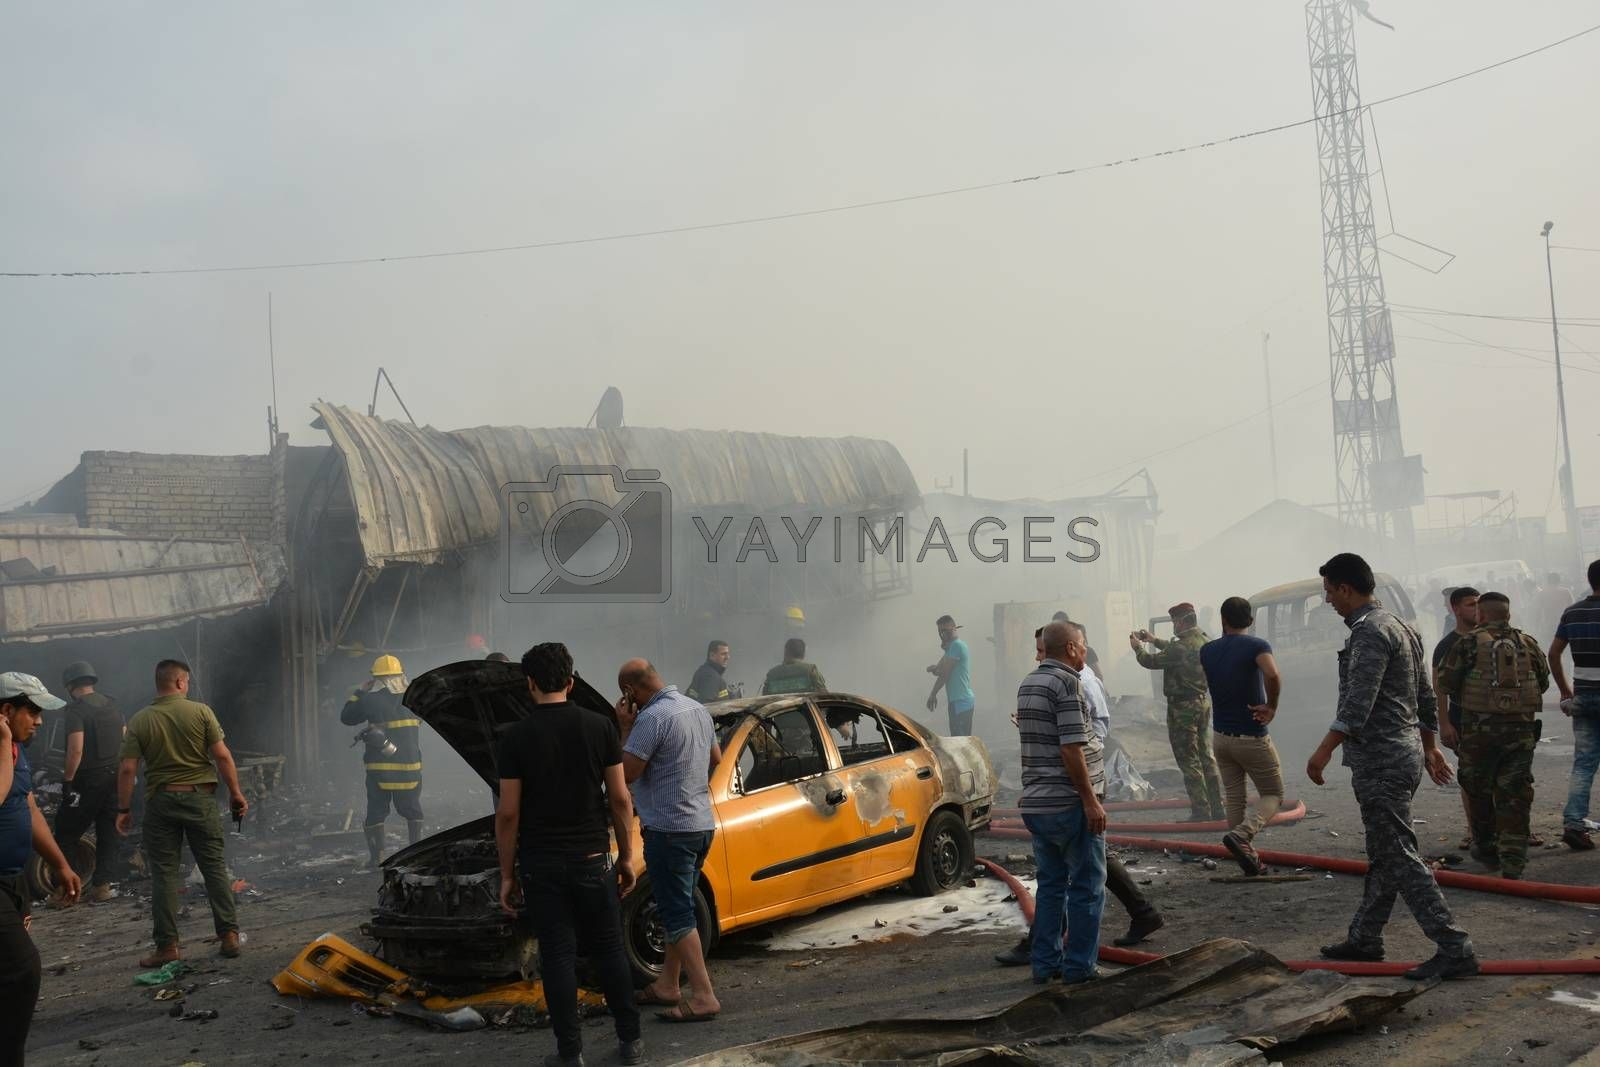 IRAQ, Baghdad: People gather in a predominantly Shi'ite Muslim district of eastern Baghdad as Iraqi security forces and firefighters secure the site of a suicide bombing claimed by the Islamic State group in New Baghdad area, on April 25, 2016. The blast ripped through shops, killing at least eleven people.